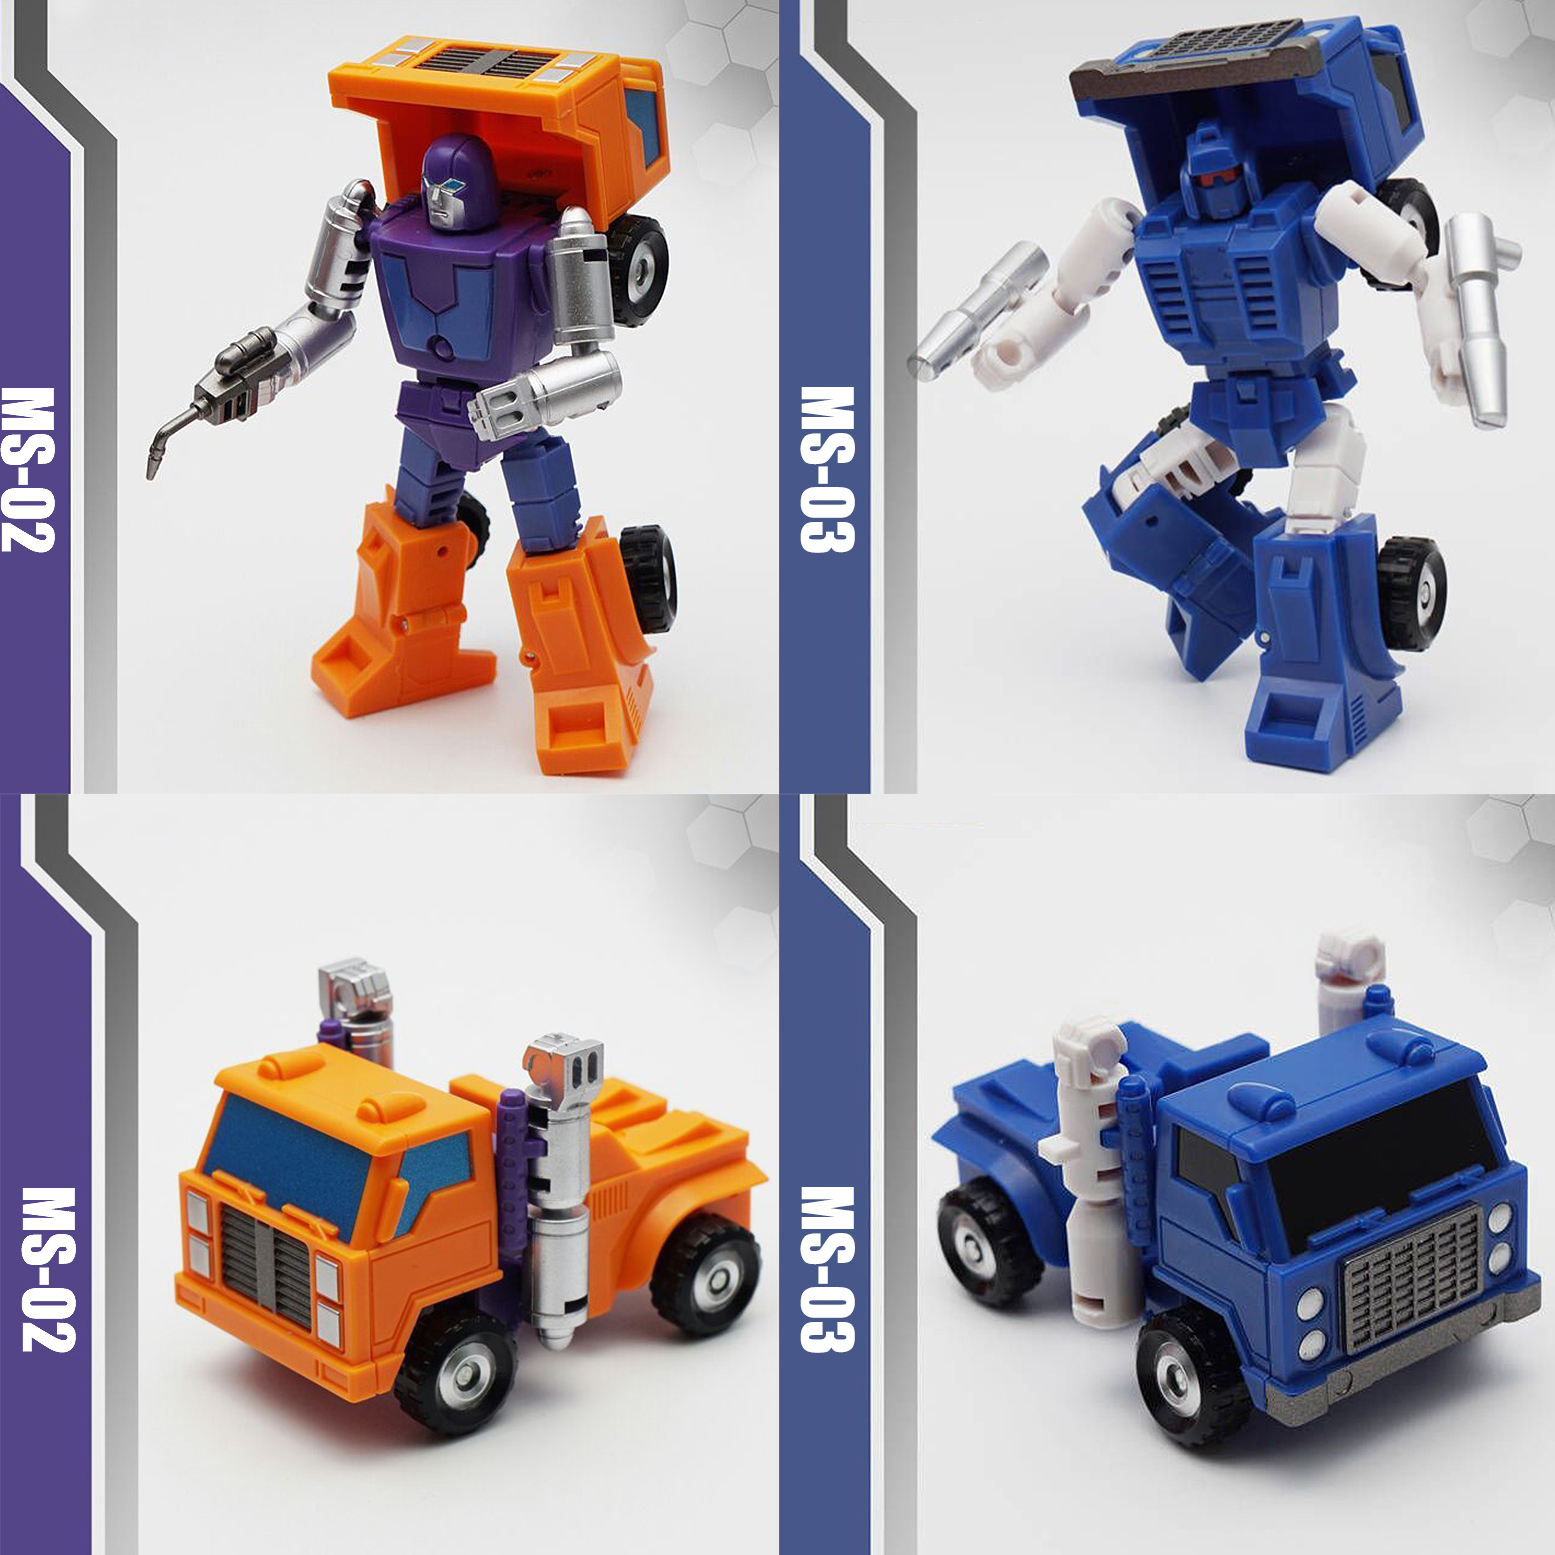 2018 Transformation MFT MS02 MS03 Huffer Pipes Powered suit action figure collectible model toys for boys tuffstuff mft 2700